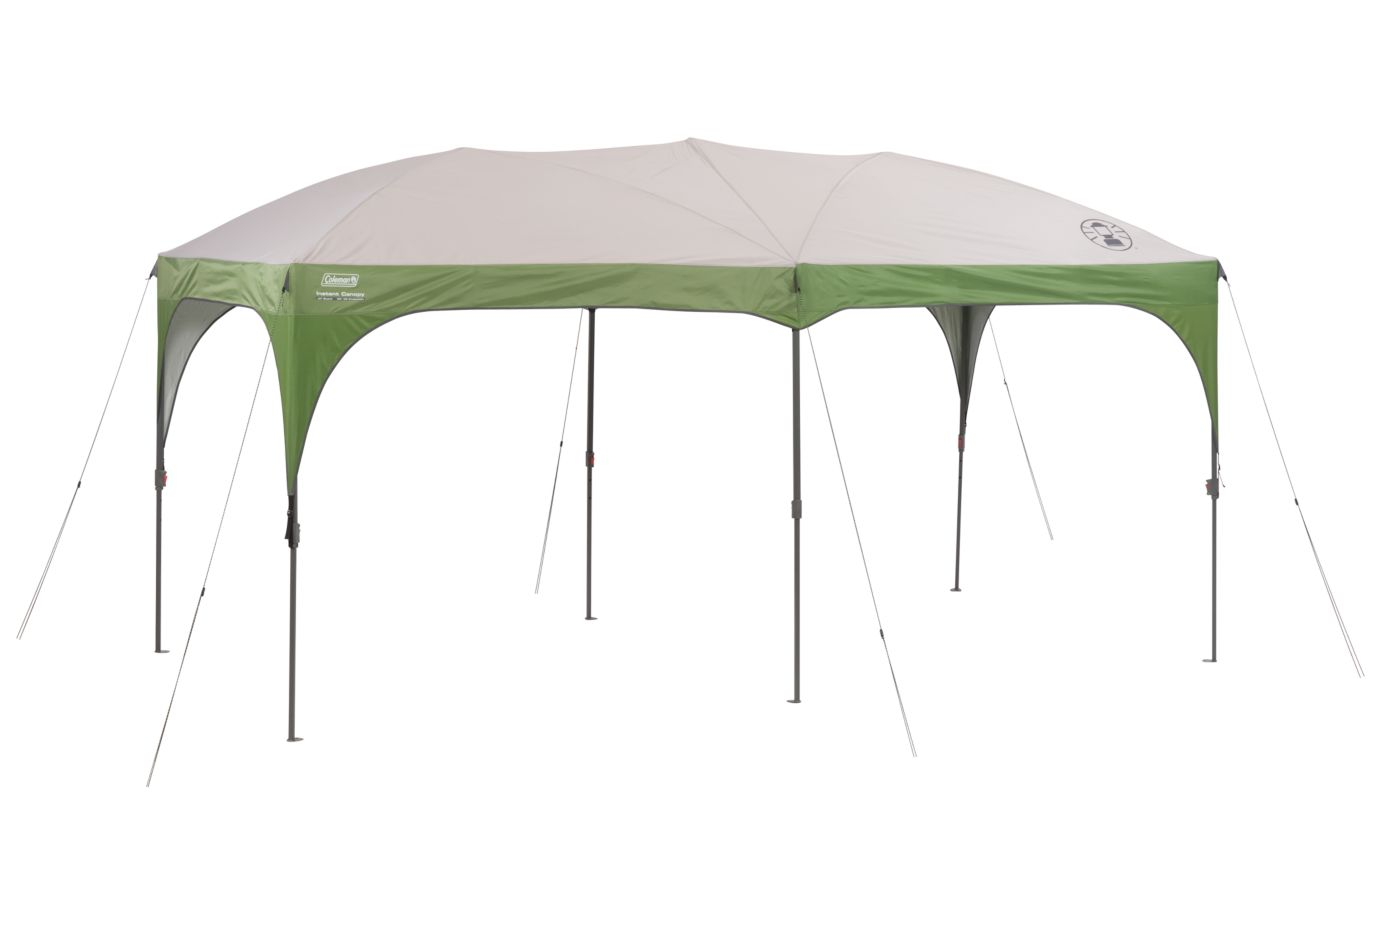 16 x 8 instant canopy - Instant Canopy